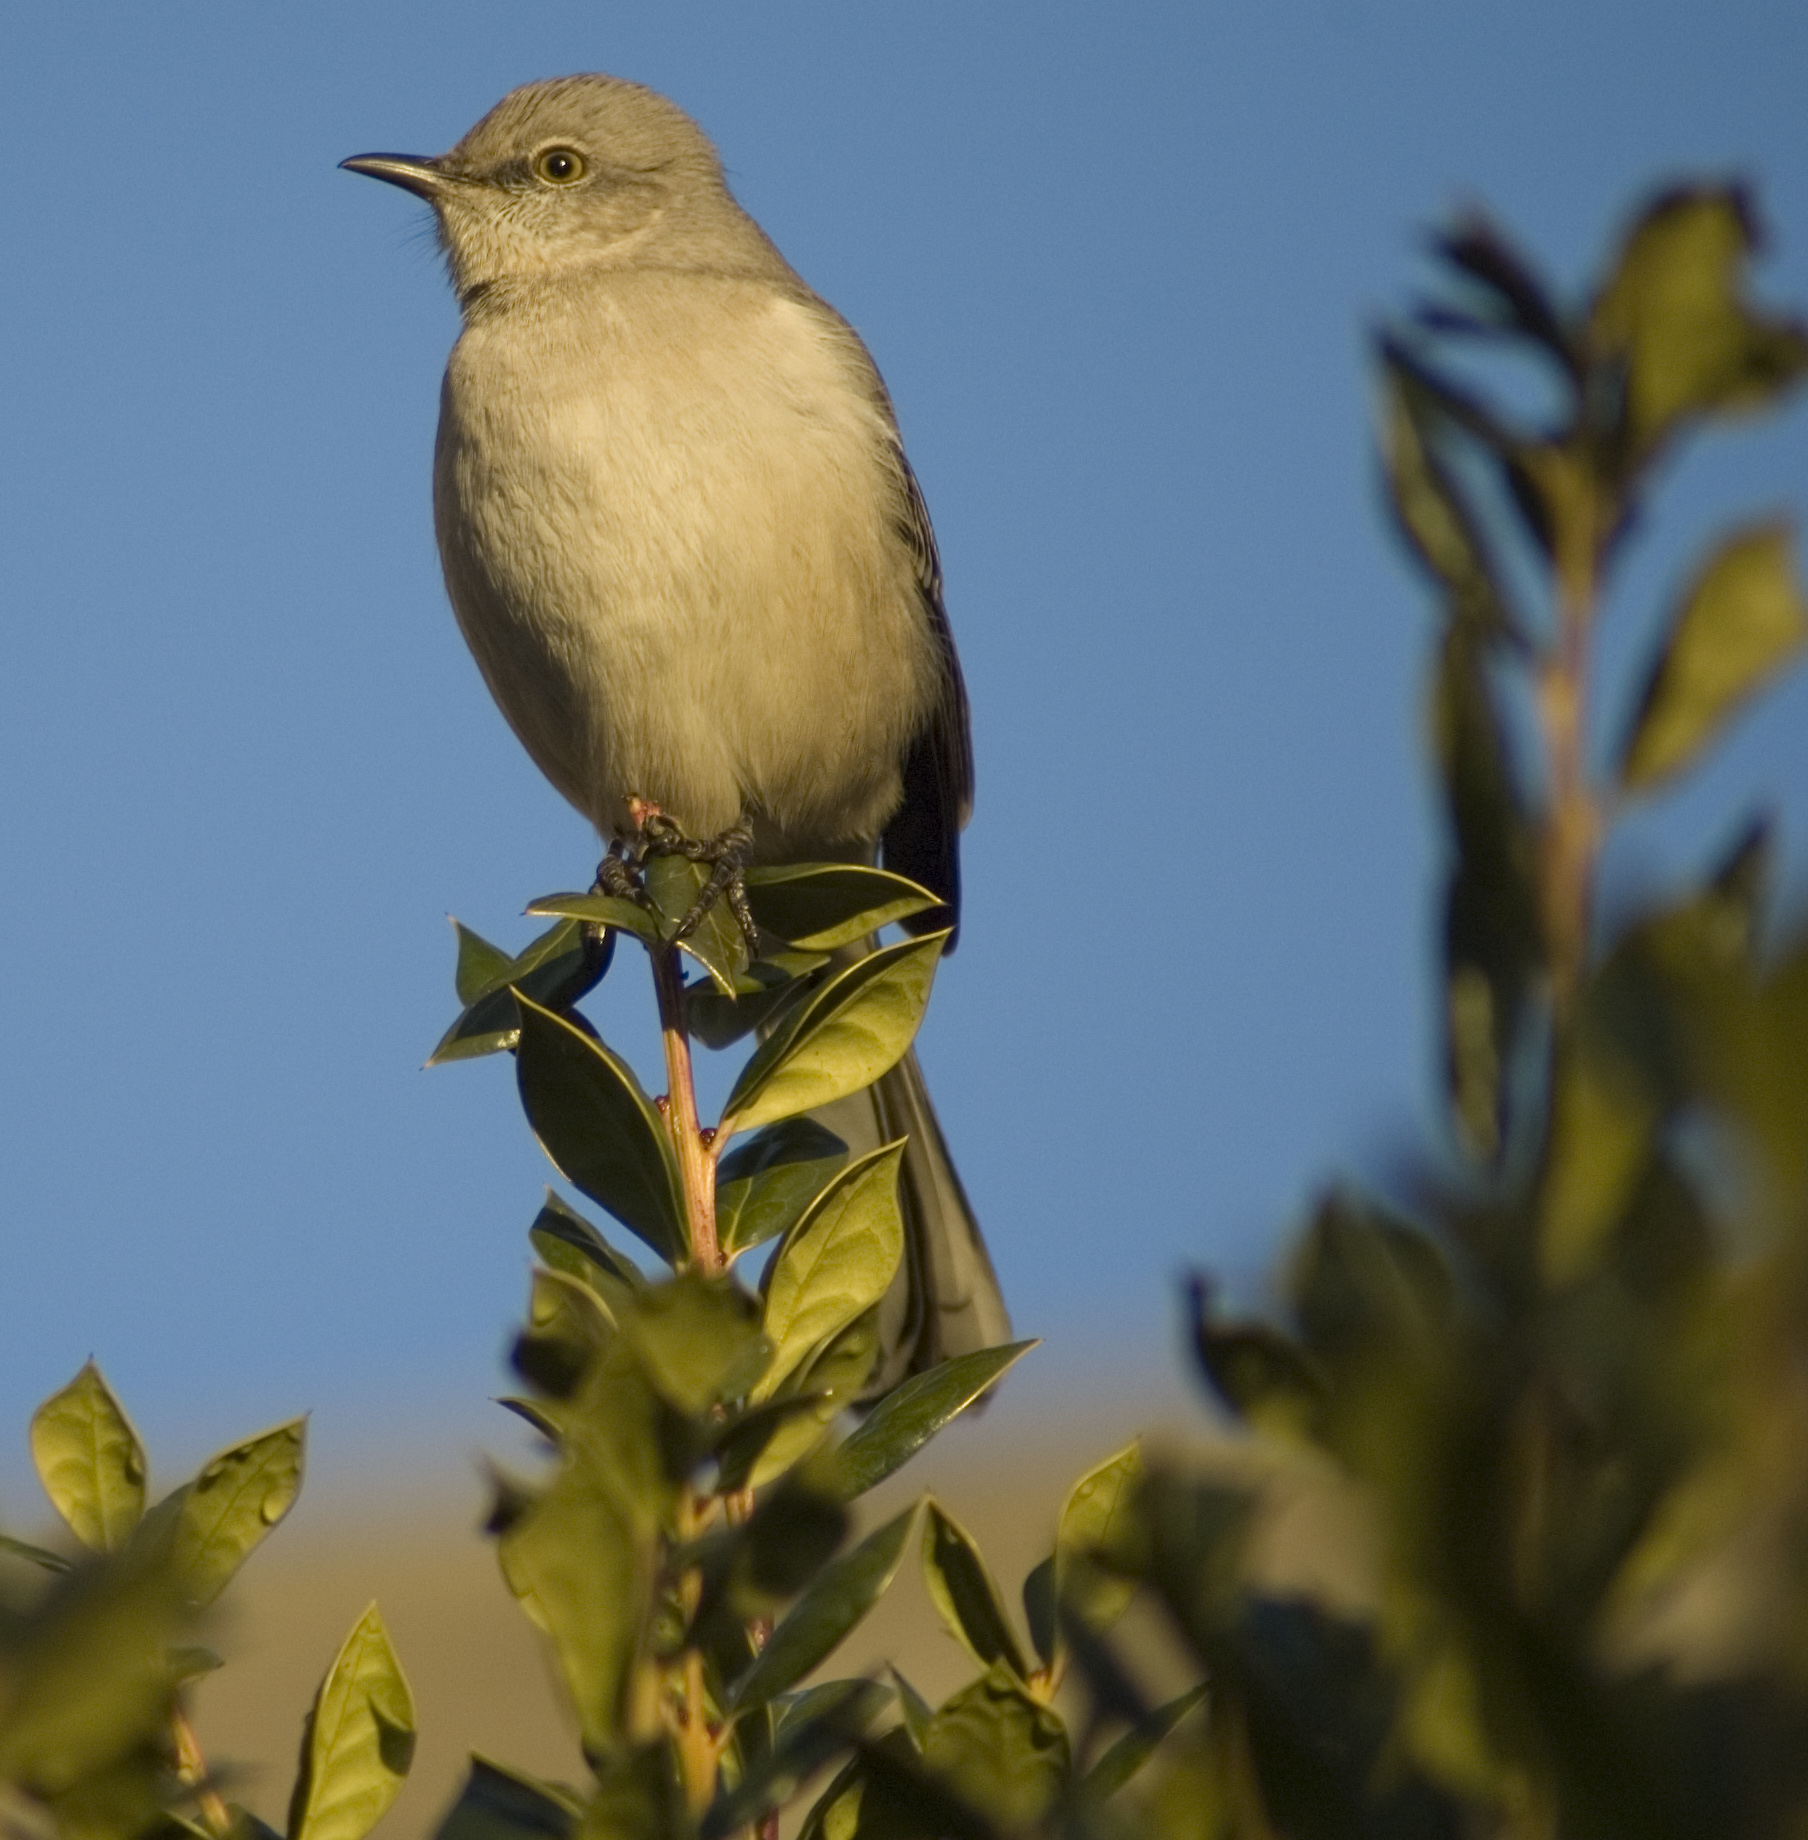 Northern Mockingbird (Mimus polyglottos) - 2010